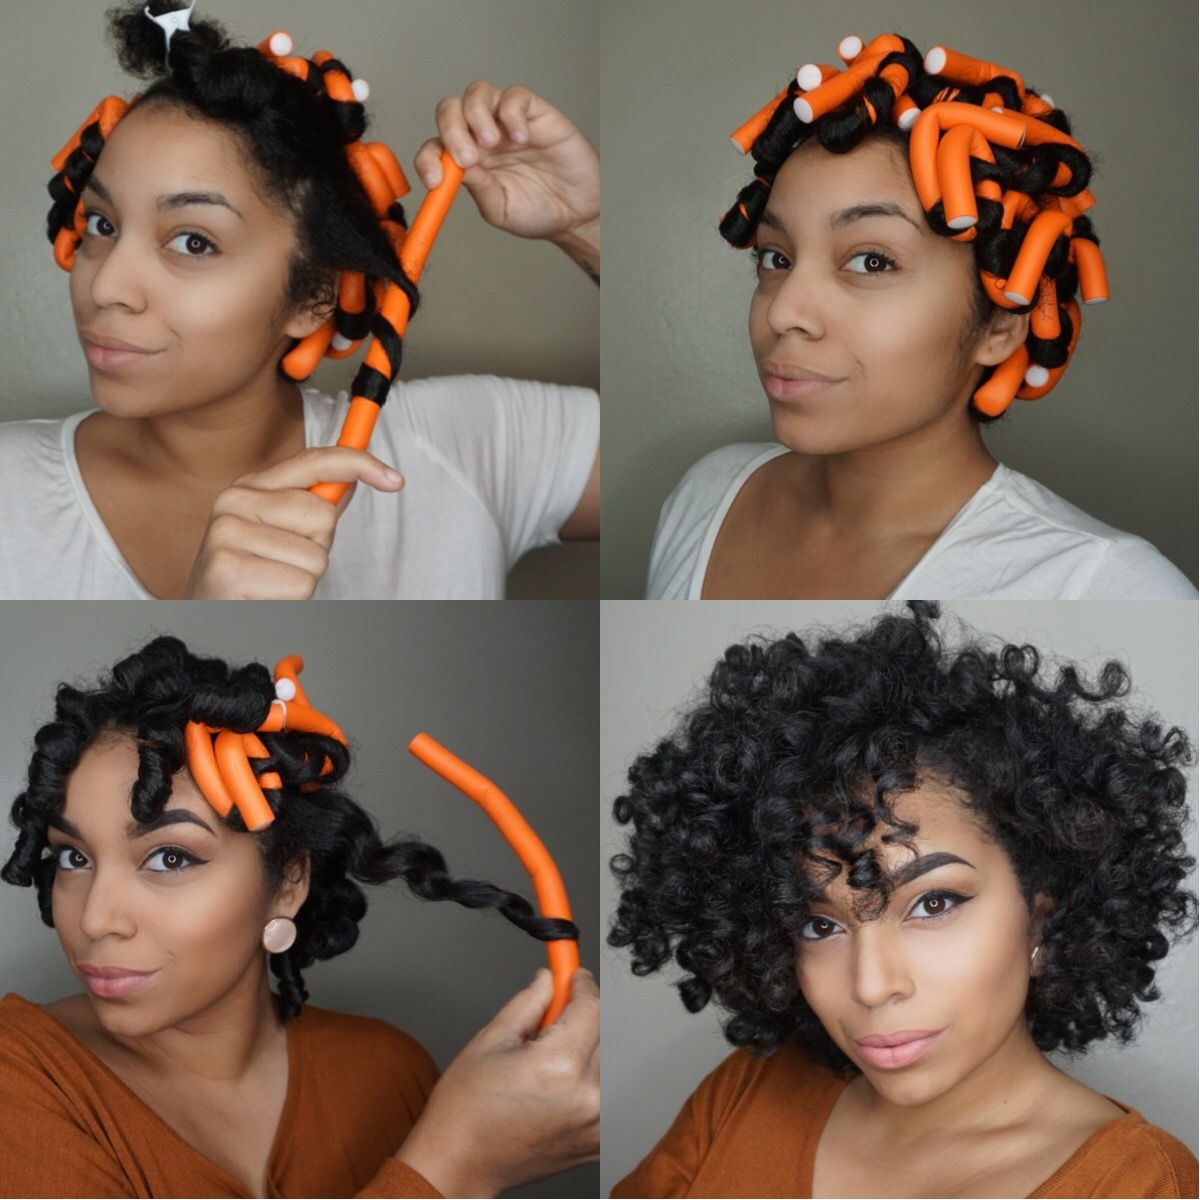 How To Use Flex Rods For Curls On Natural Hair My Fair Hair